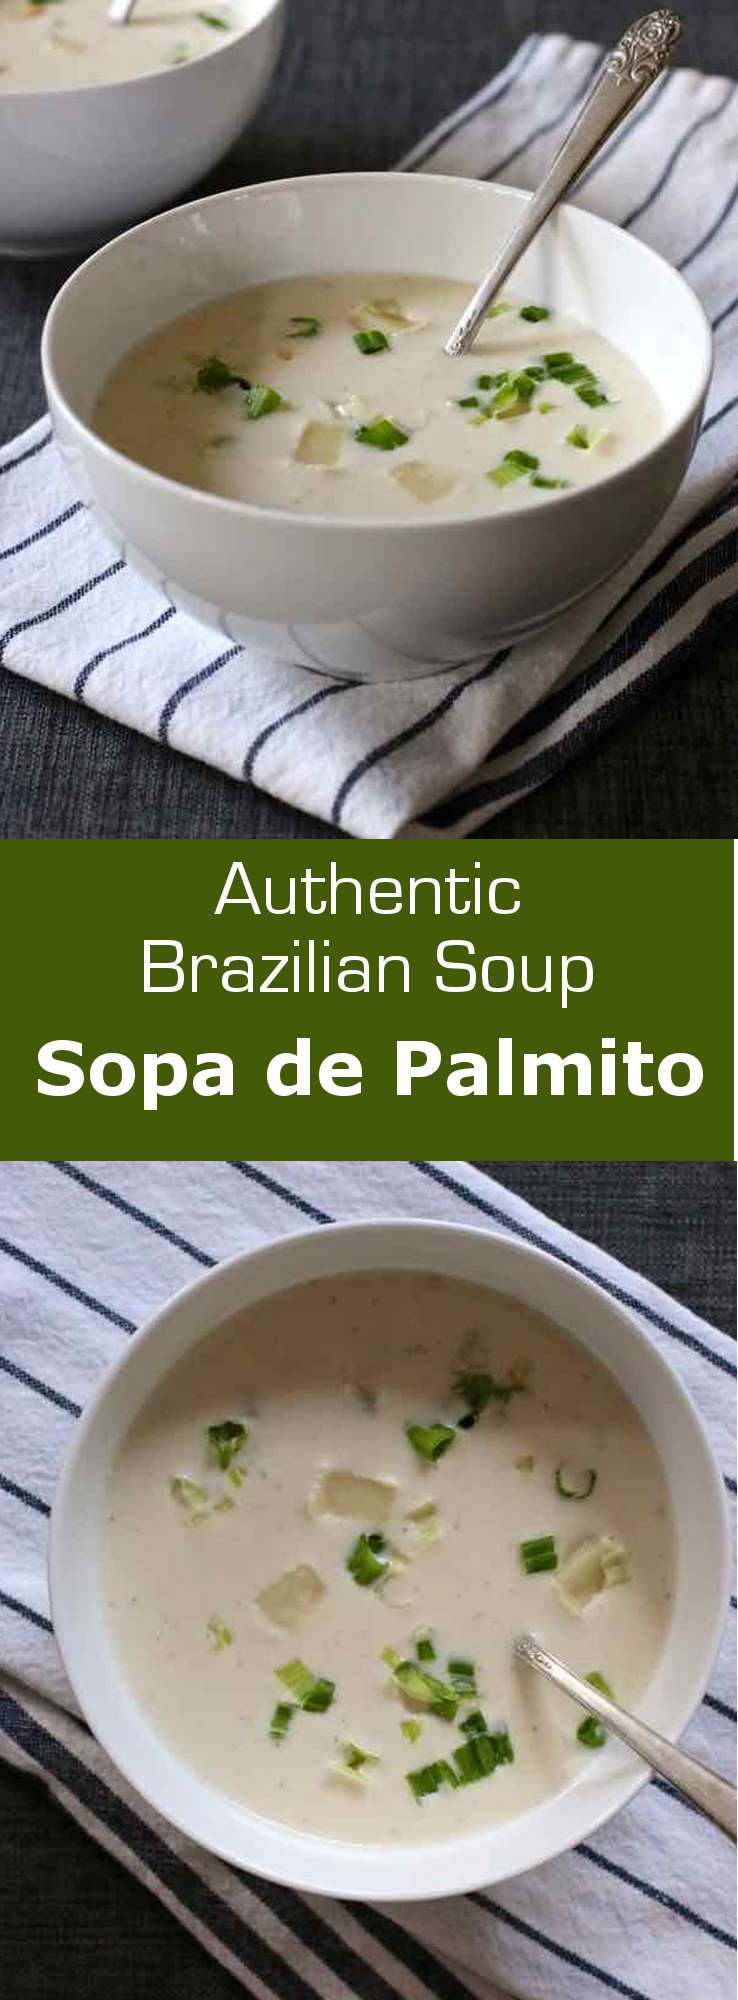 Sopa de palmito is a creamy heart of palm soup that is often served warm but that is also delicious when savored chilled. #Brazil #196flavors